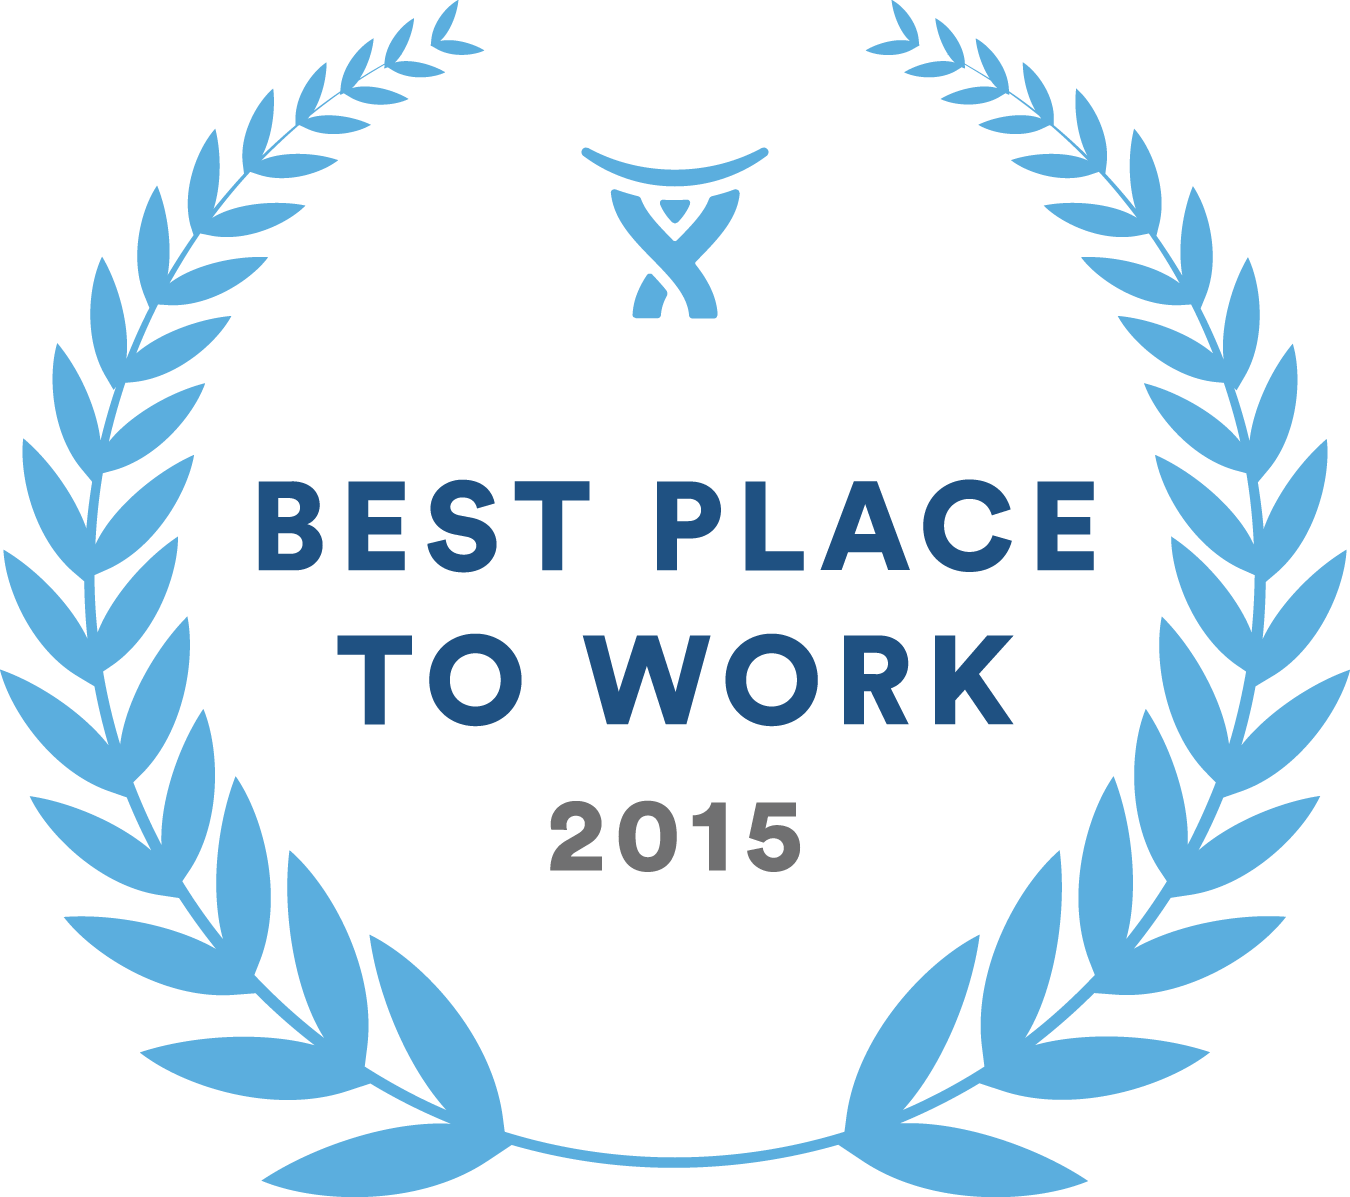 Best Place to Work 2015 award logo